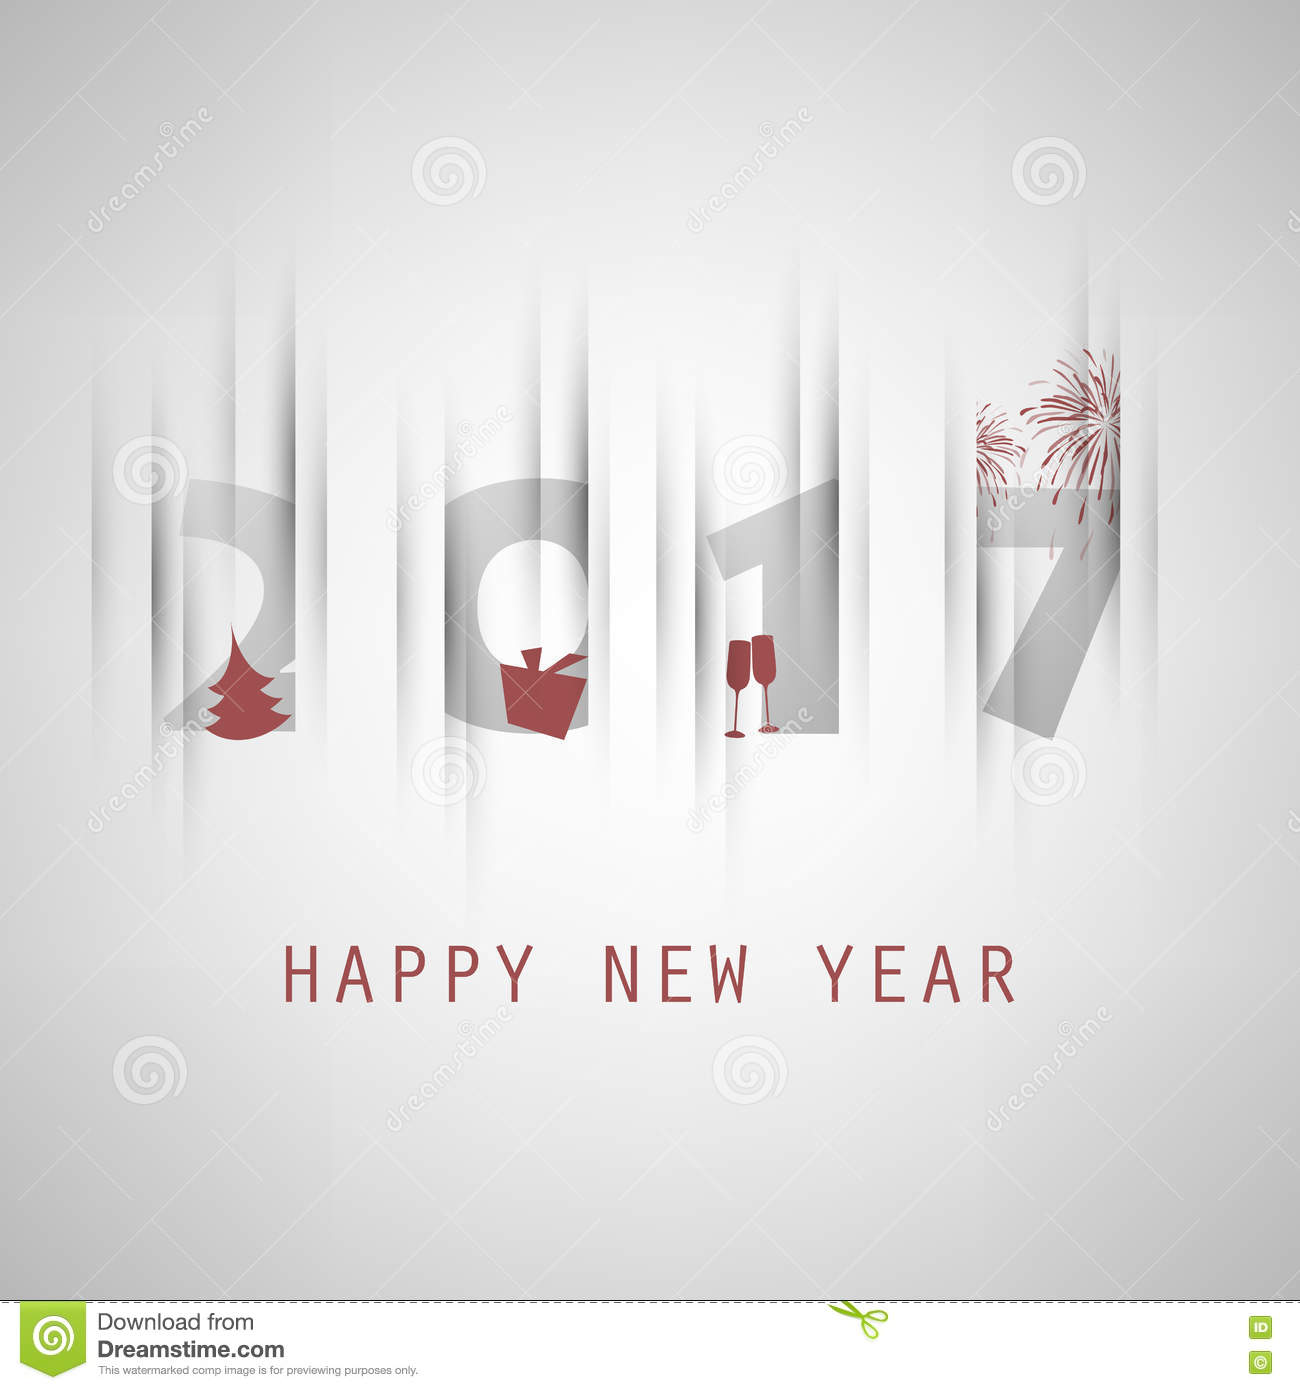 Best Wishes - Simple Colorful New Year Card, Cover Or ...